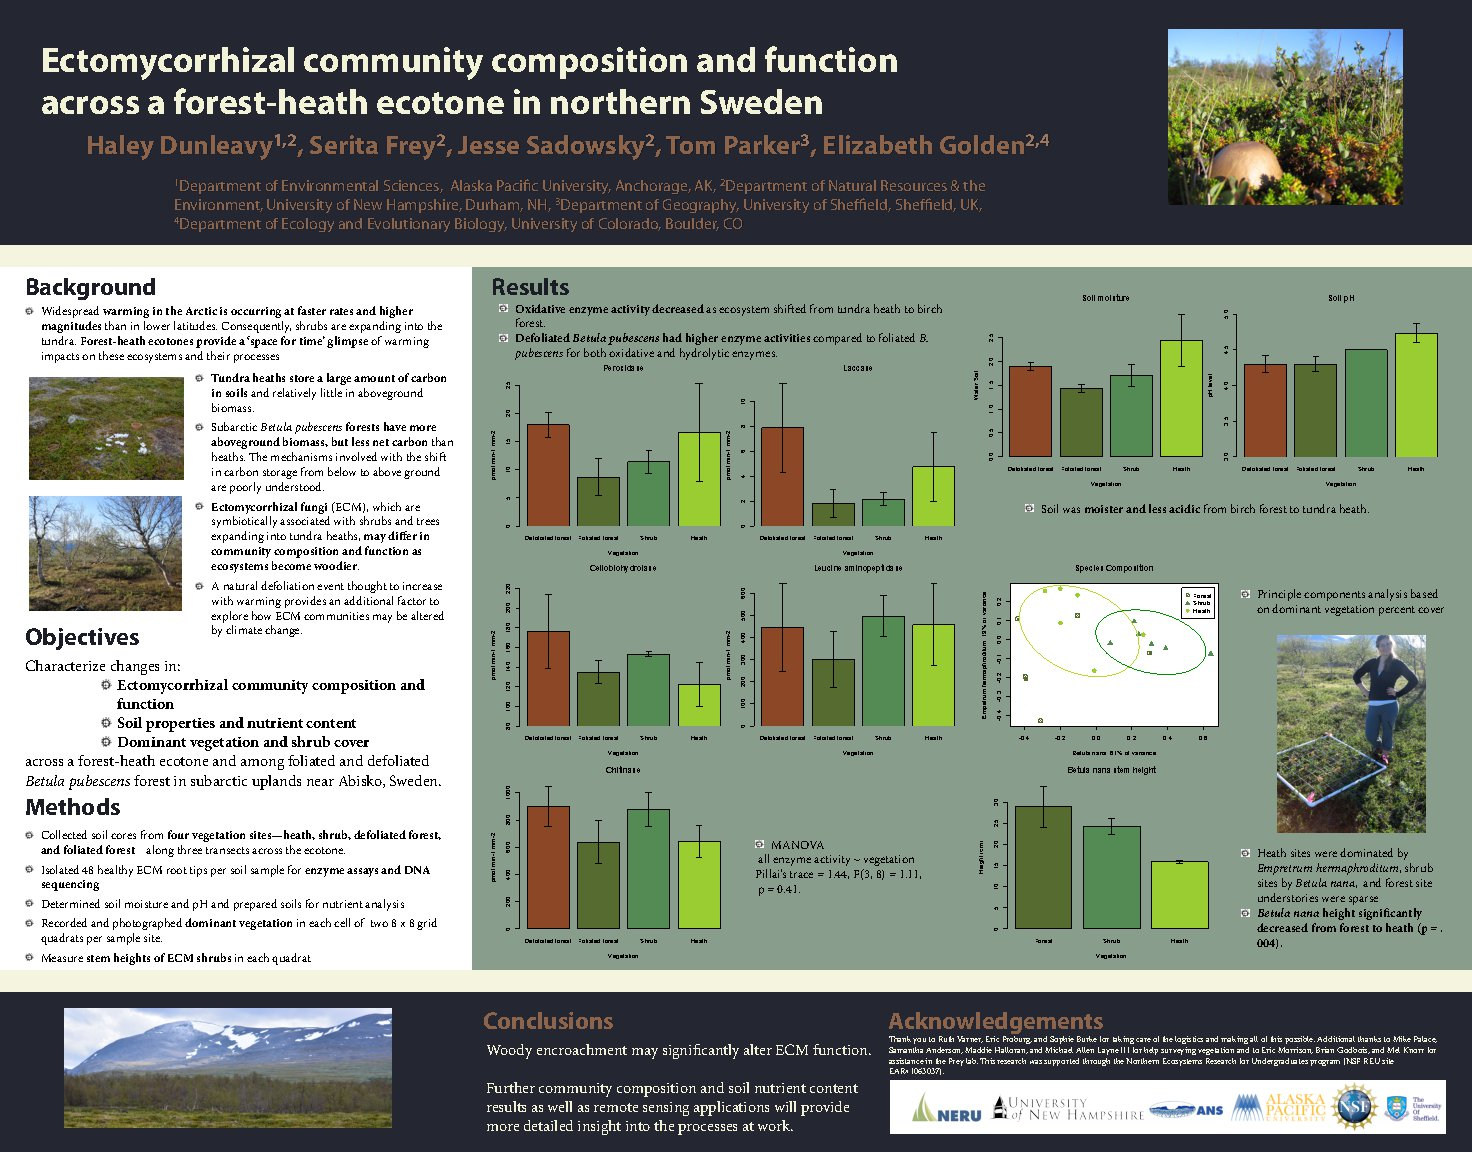 Ectomycorrhizal Community Composition And Function Across A Forest-Heath Ecotone In Northern Sweden by hdunleavy